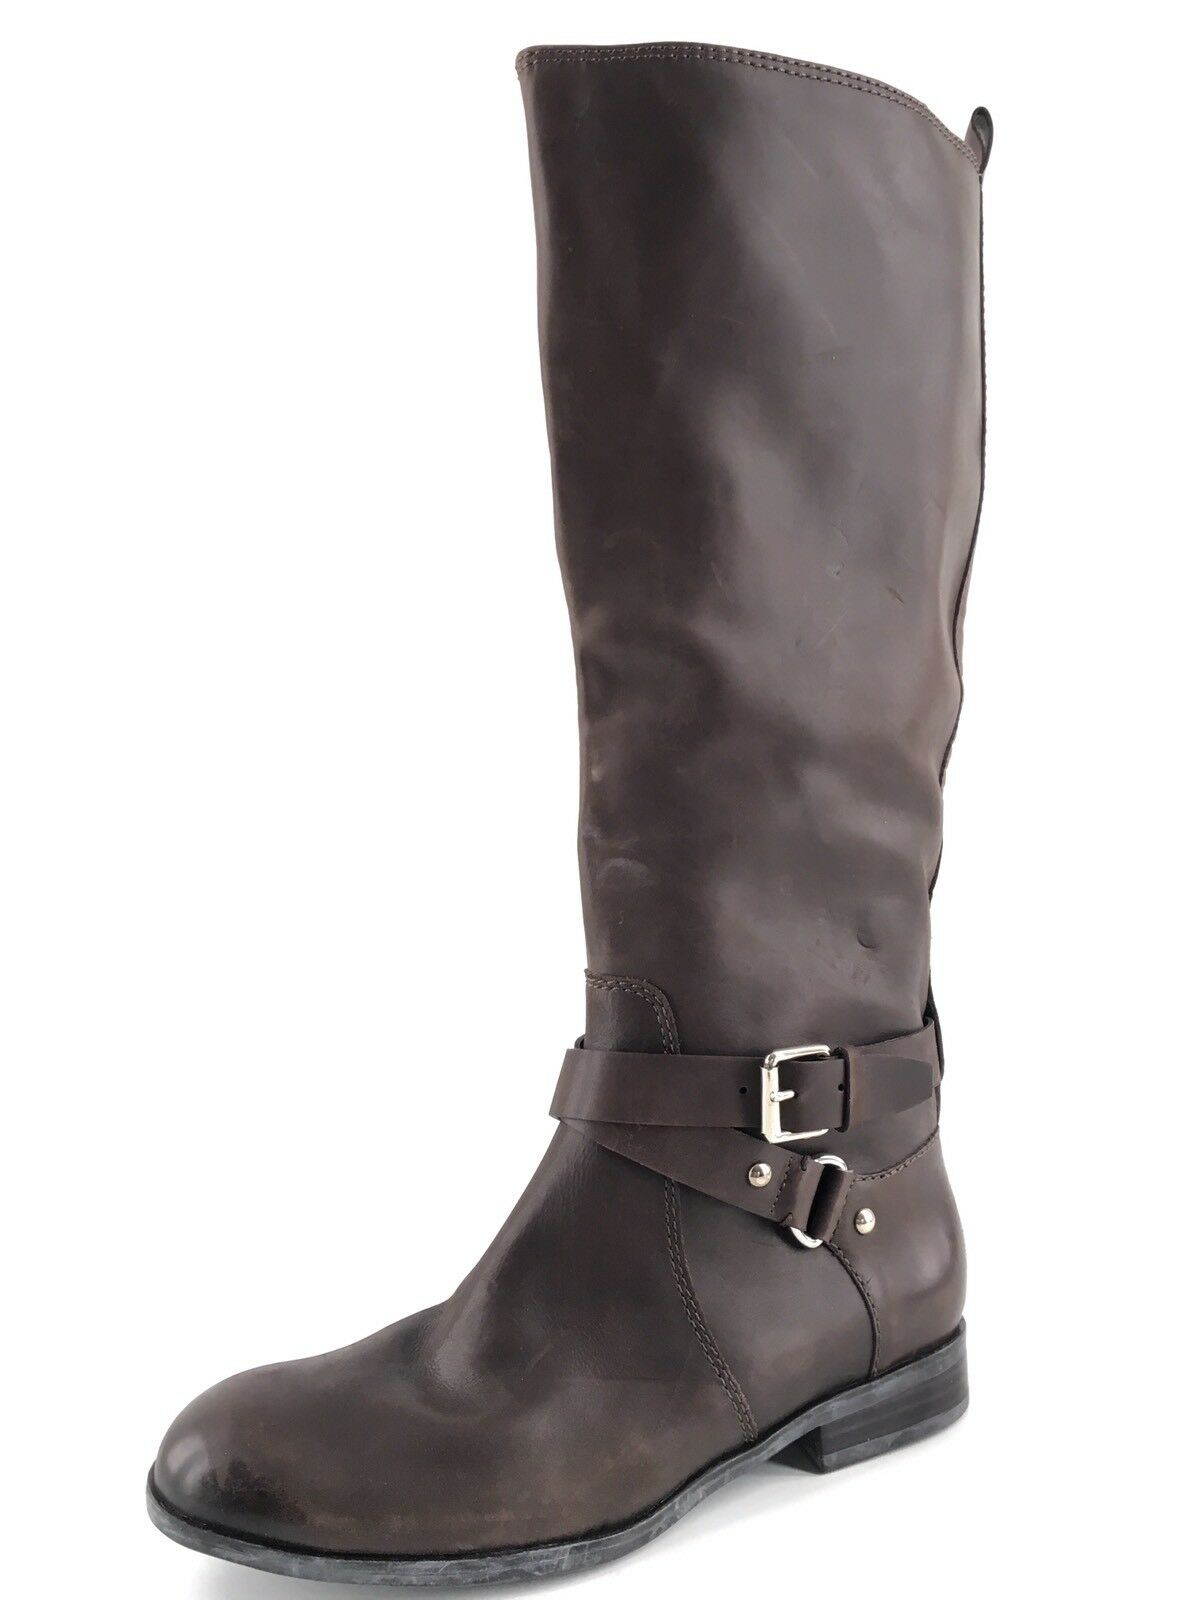 Enzo Angiolini Daniana Brown Leather Knee High Boots Womens Size 7.5 M*